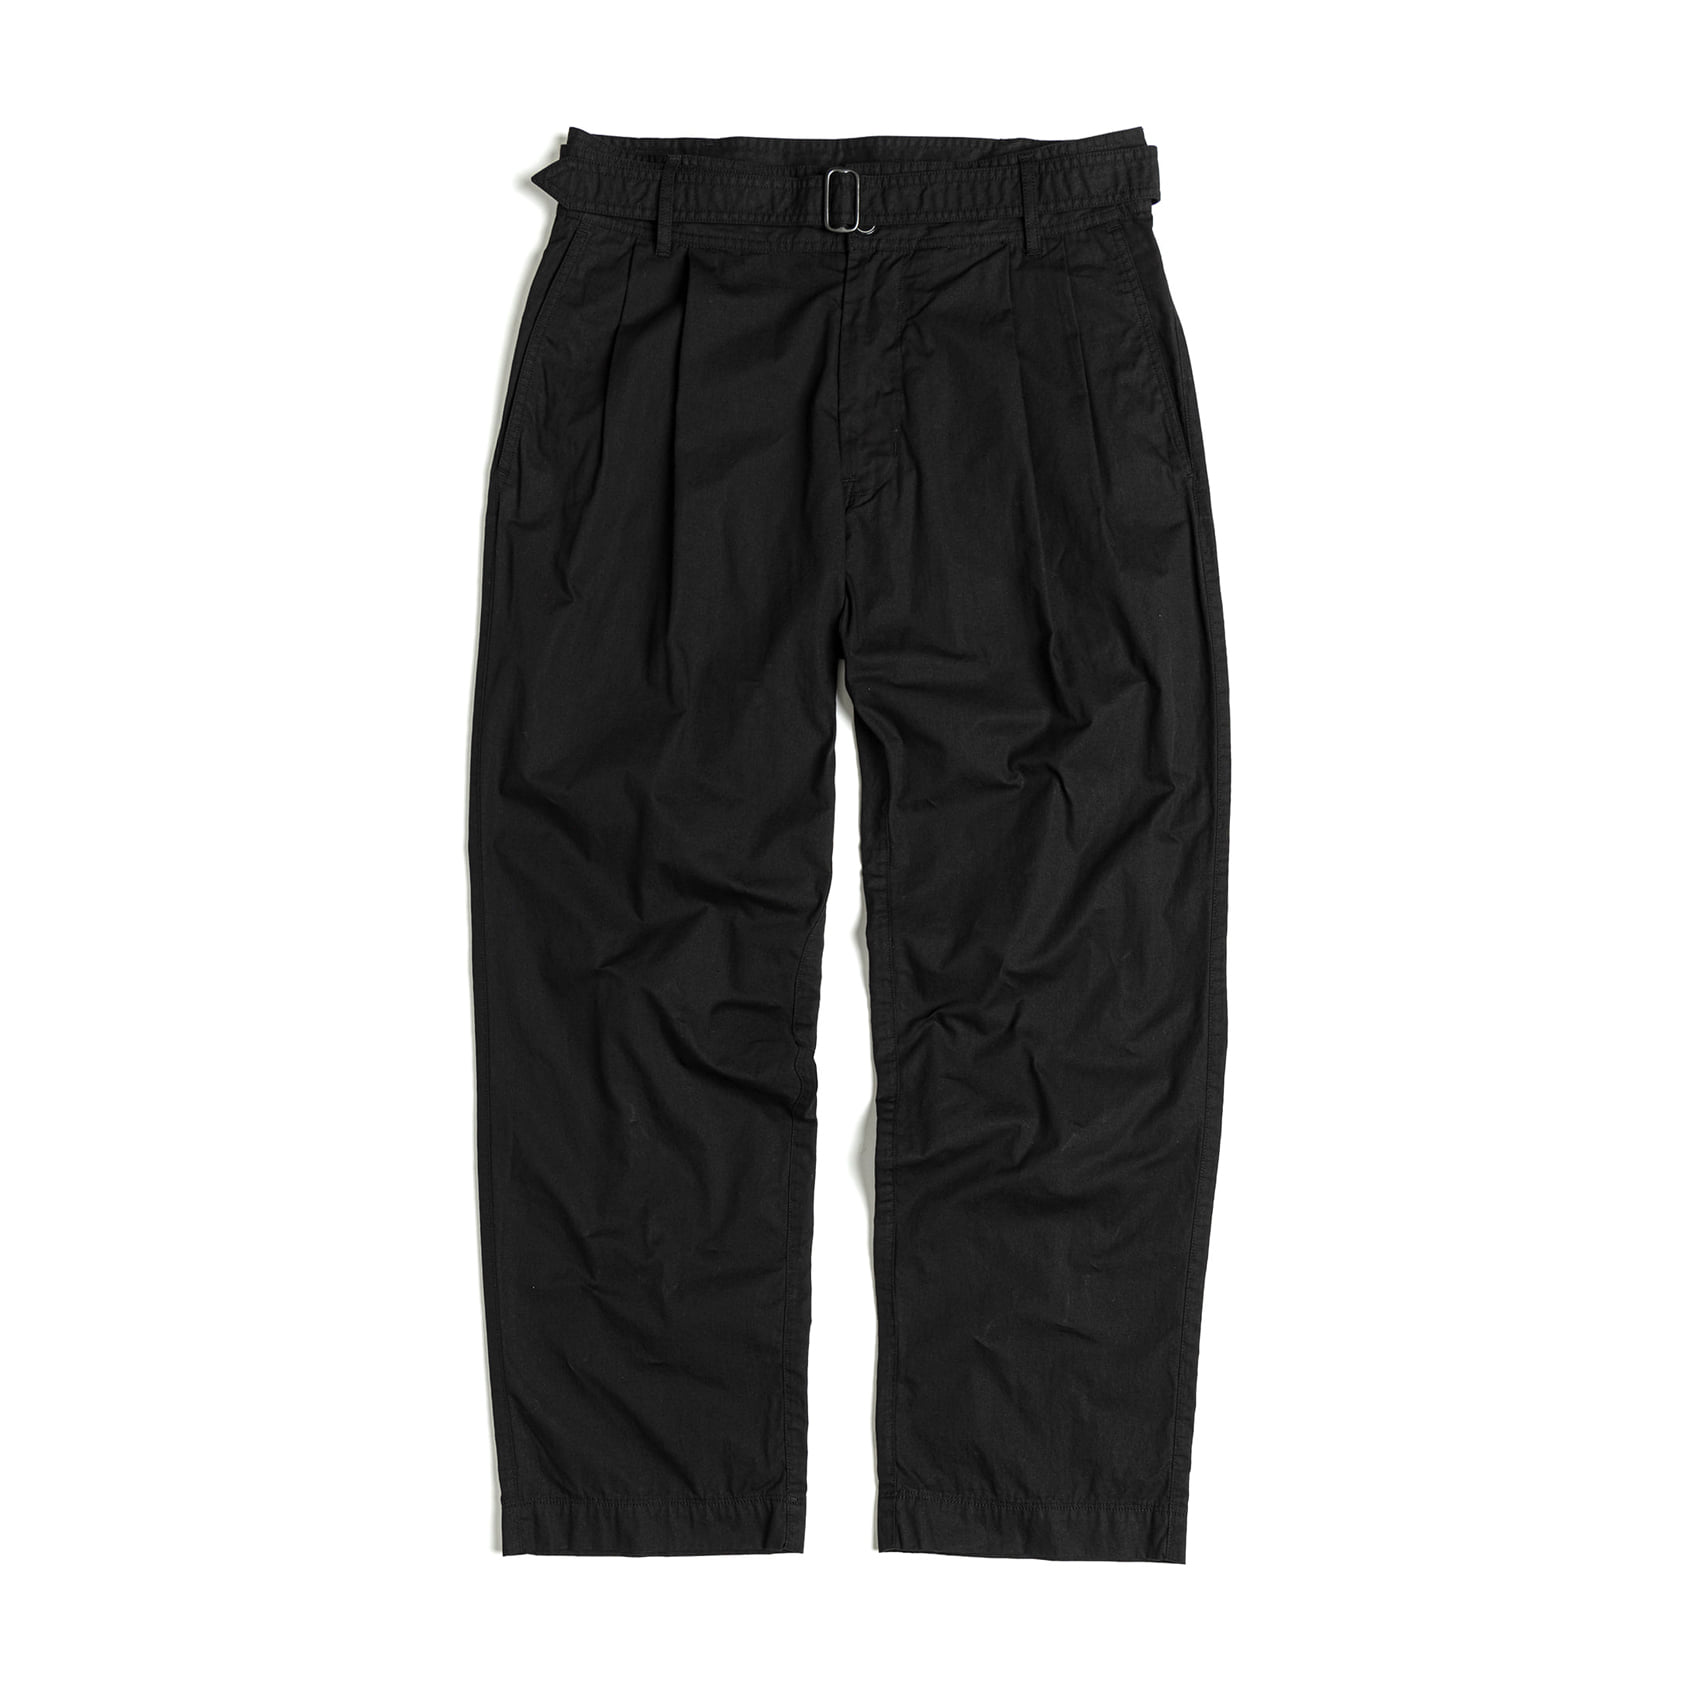 BELTED PANTS - BLACK